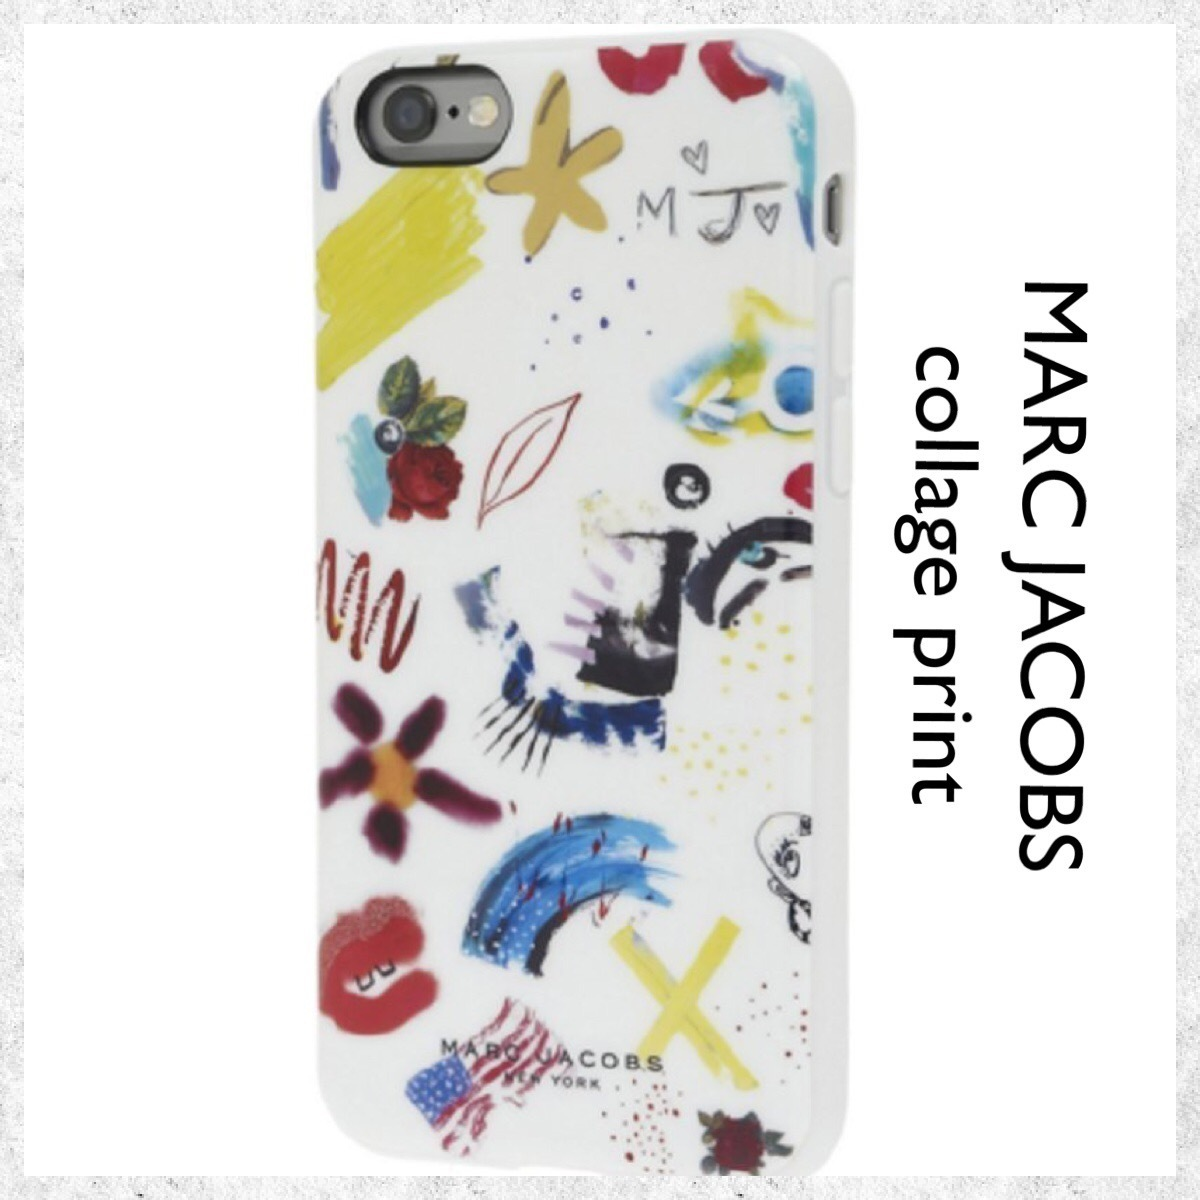 MARC JACOBS / iPhone 6/6S case / コラージュプリント